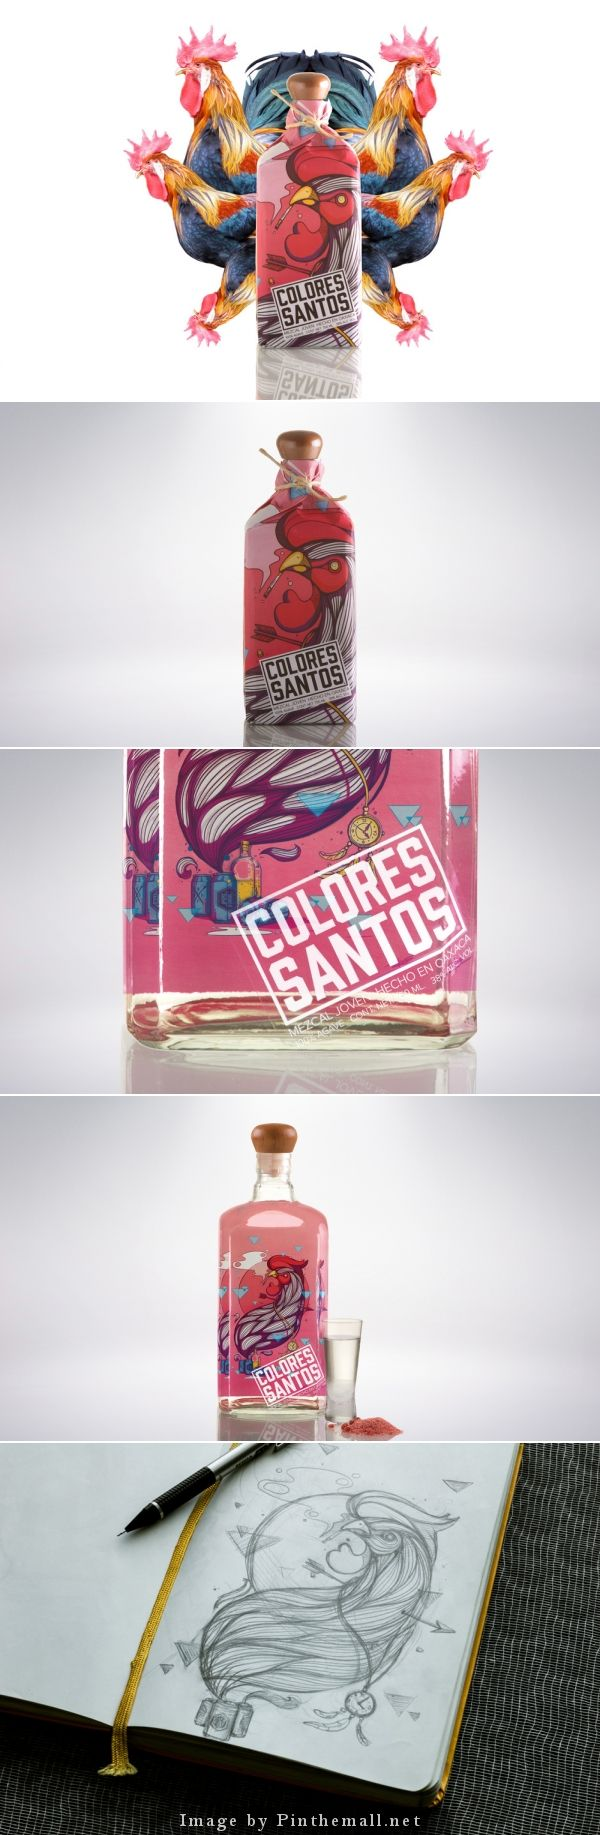 Love this Colores Santos packaging but not sure I make the Mezcal connection curated by Packaging Diva PD